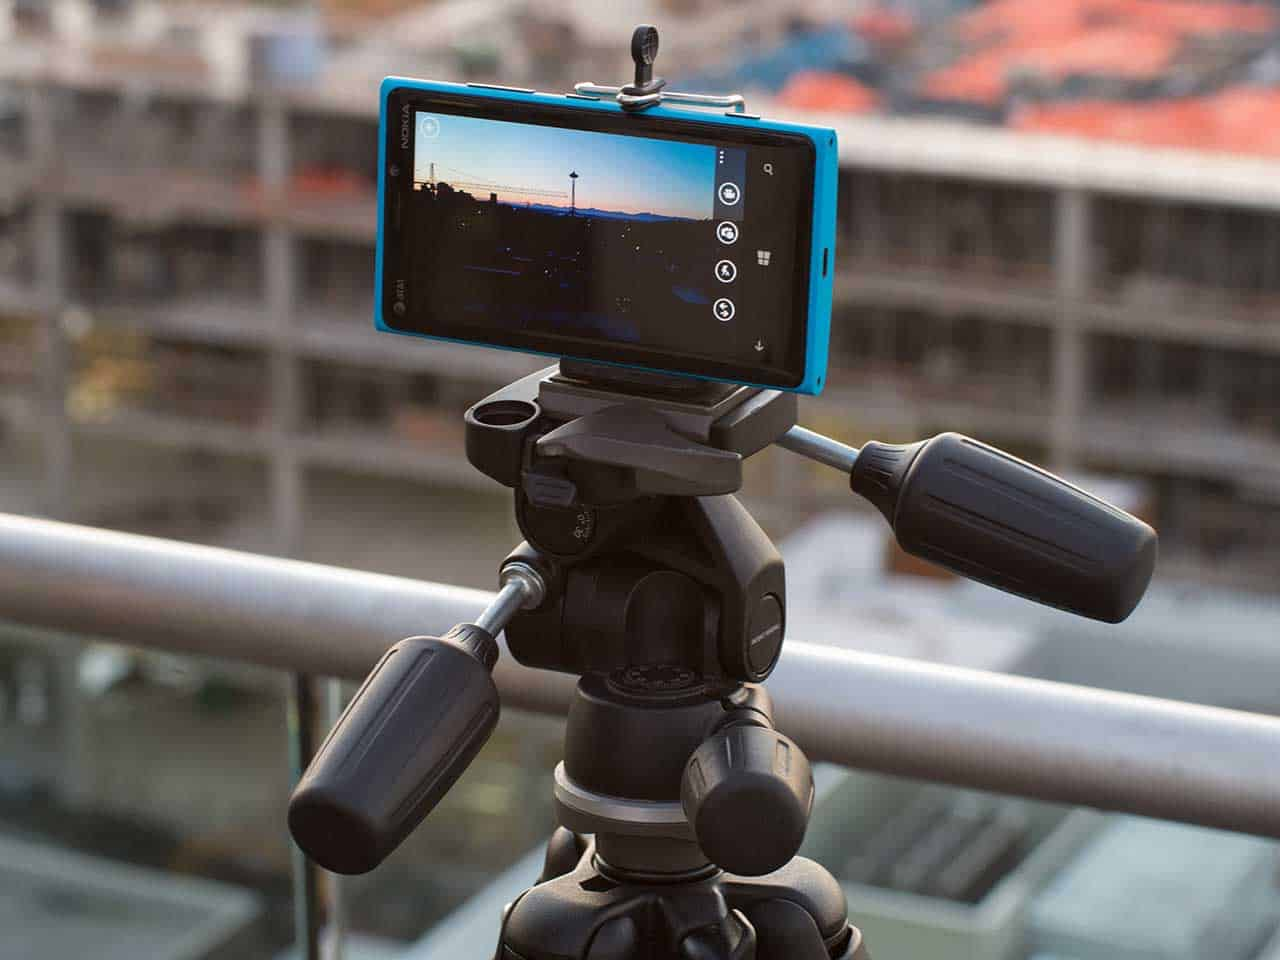 smartphone tripod mounts